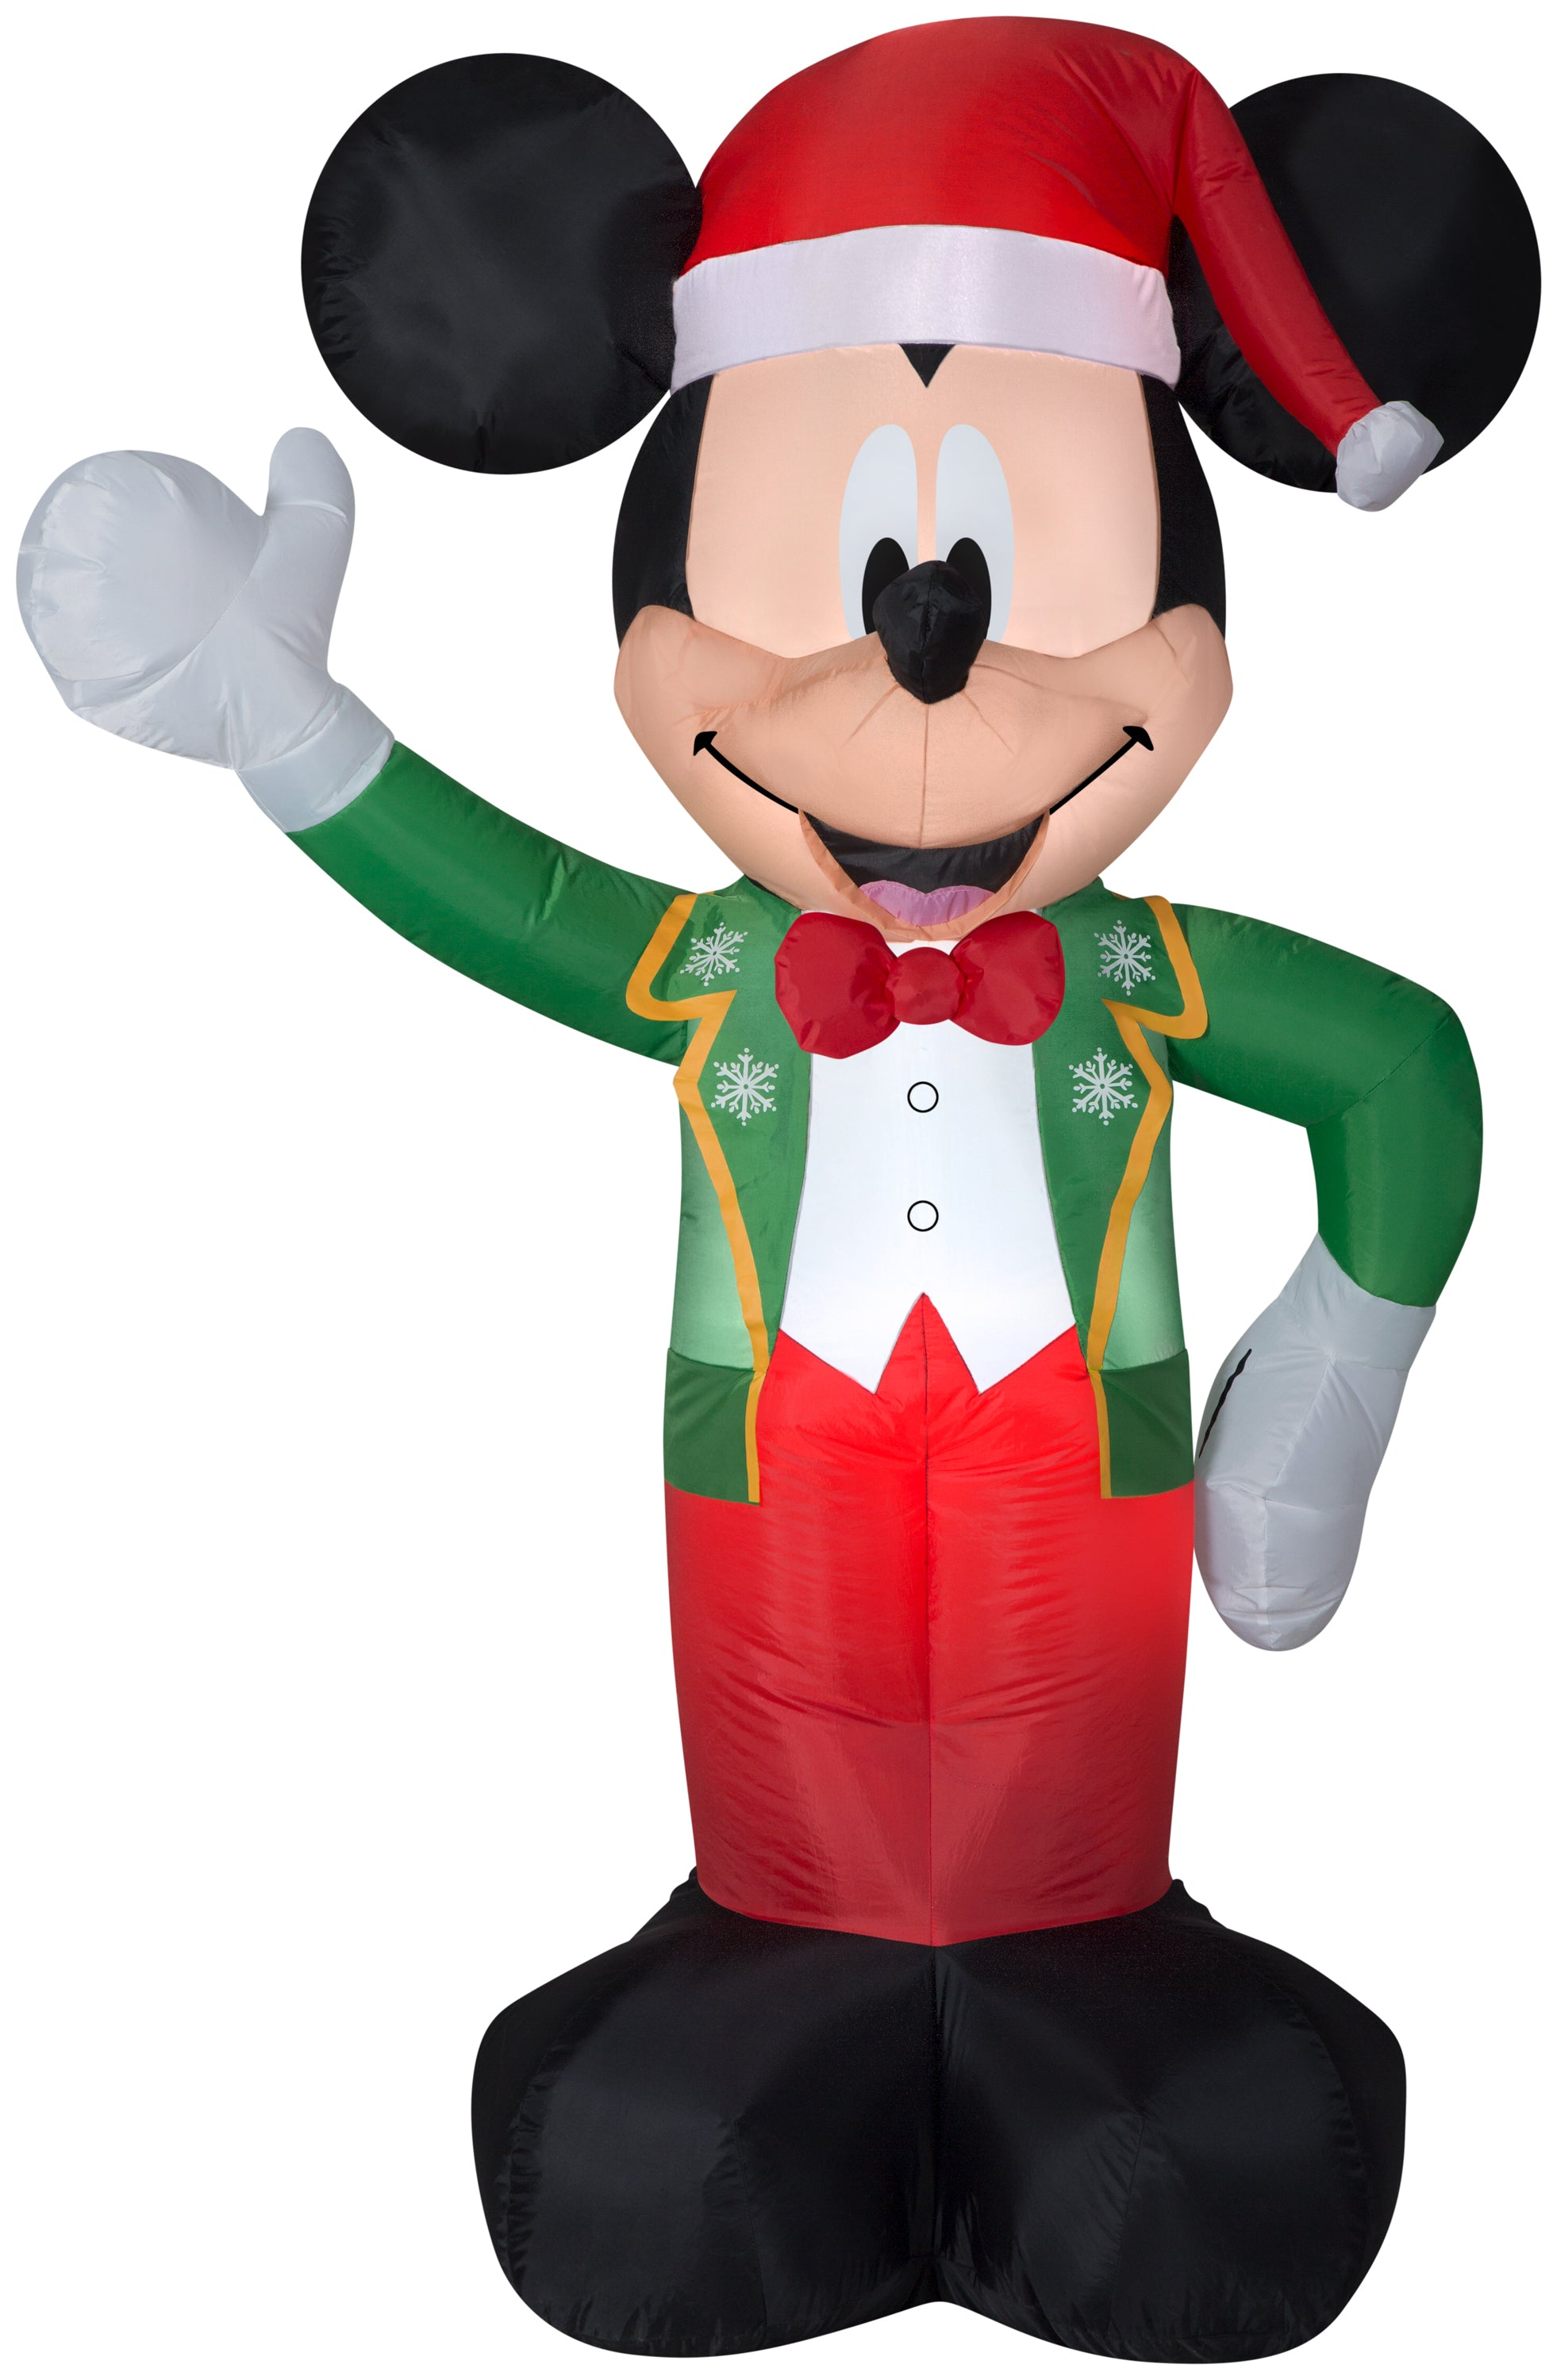 5' Airblown Mickey in Green/Red Winter Outfit Disney Christmas Inflatable